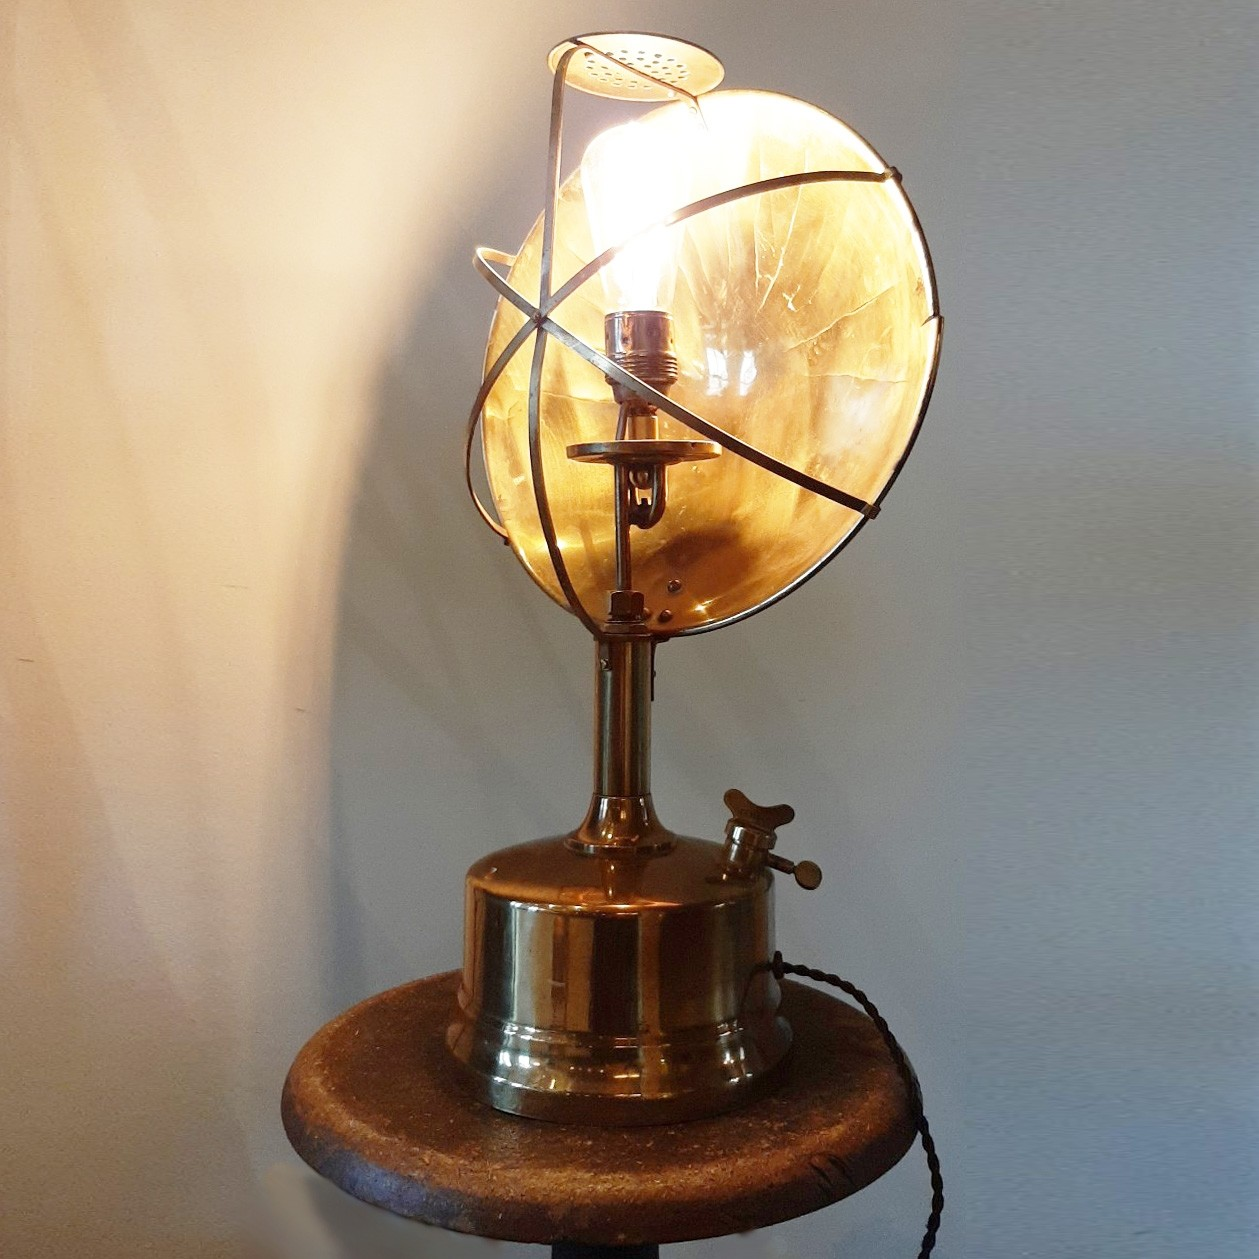 Industrial table lamp made from old materials